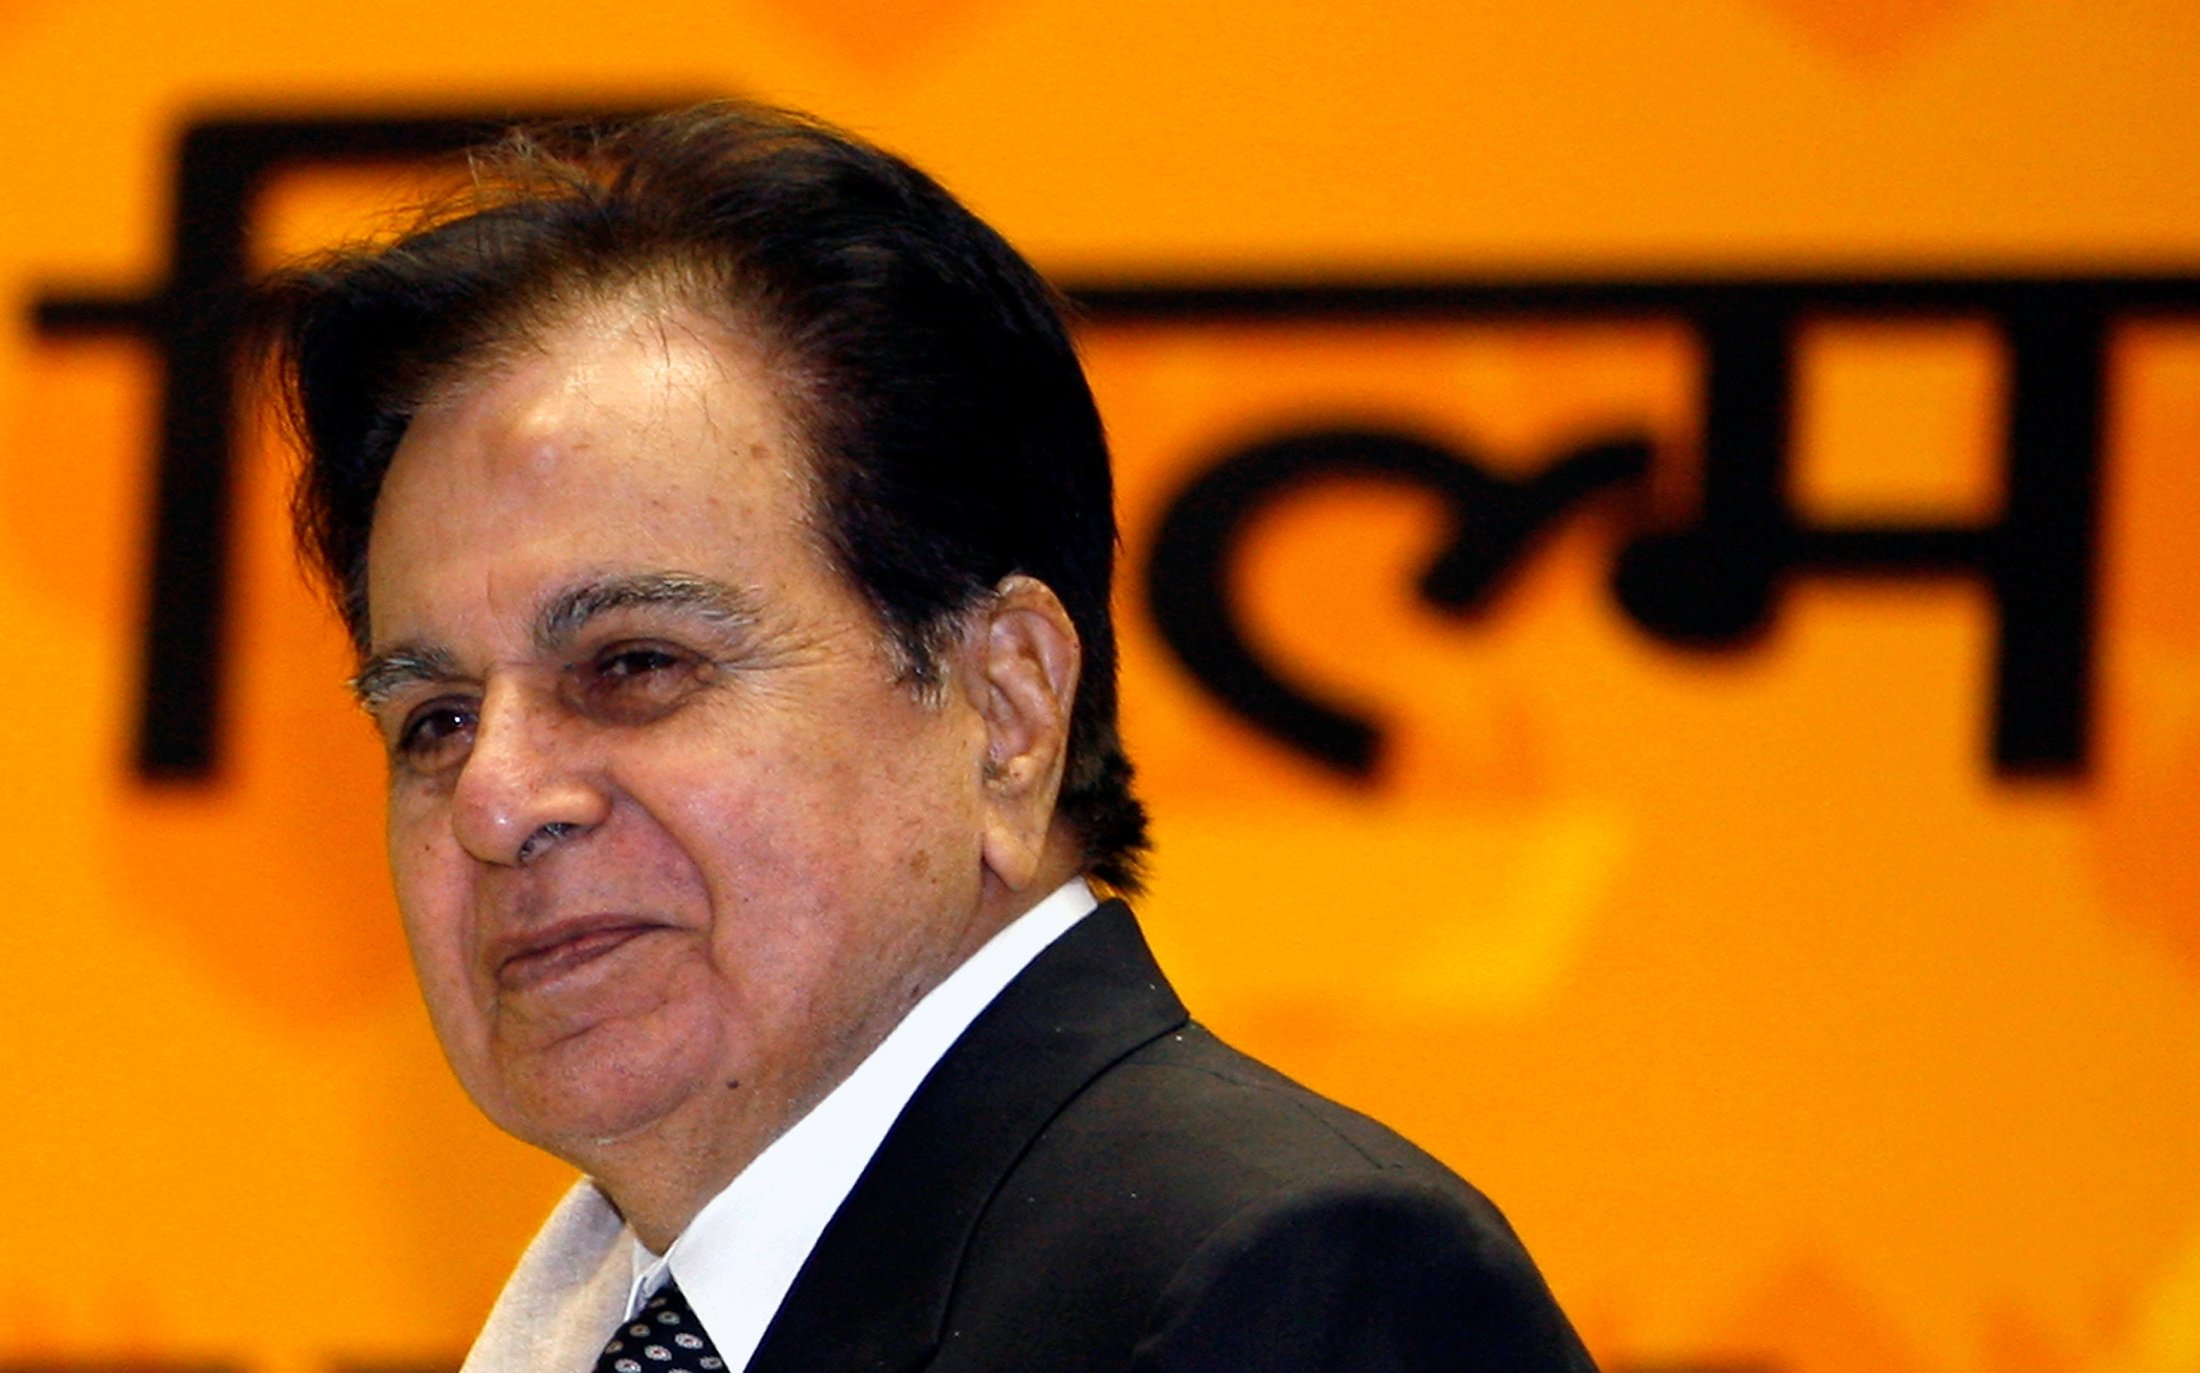 Bollywood star Dilip Kumar smiles after receiving a lifetime achievement award during the 54th national film awards ceremony in New Delhi, India, Sept. 2, 2008. (REUTERS Photo)